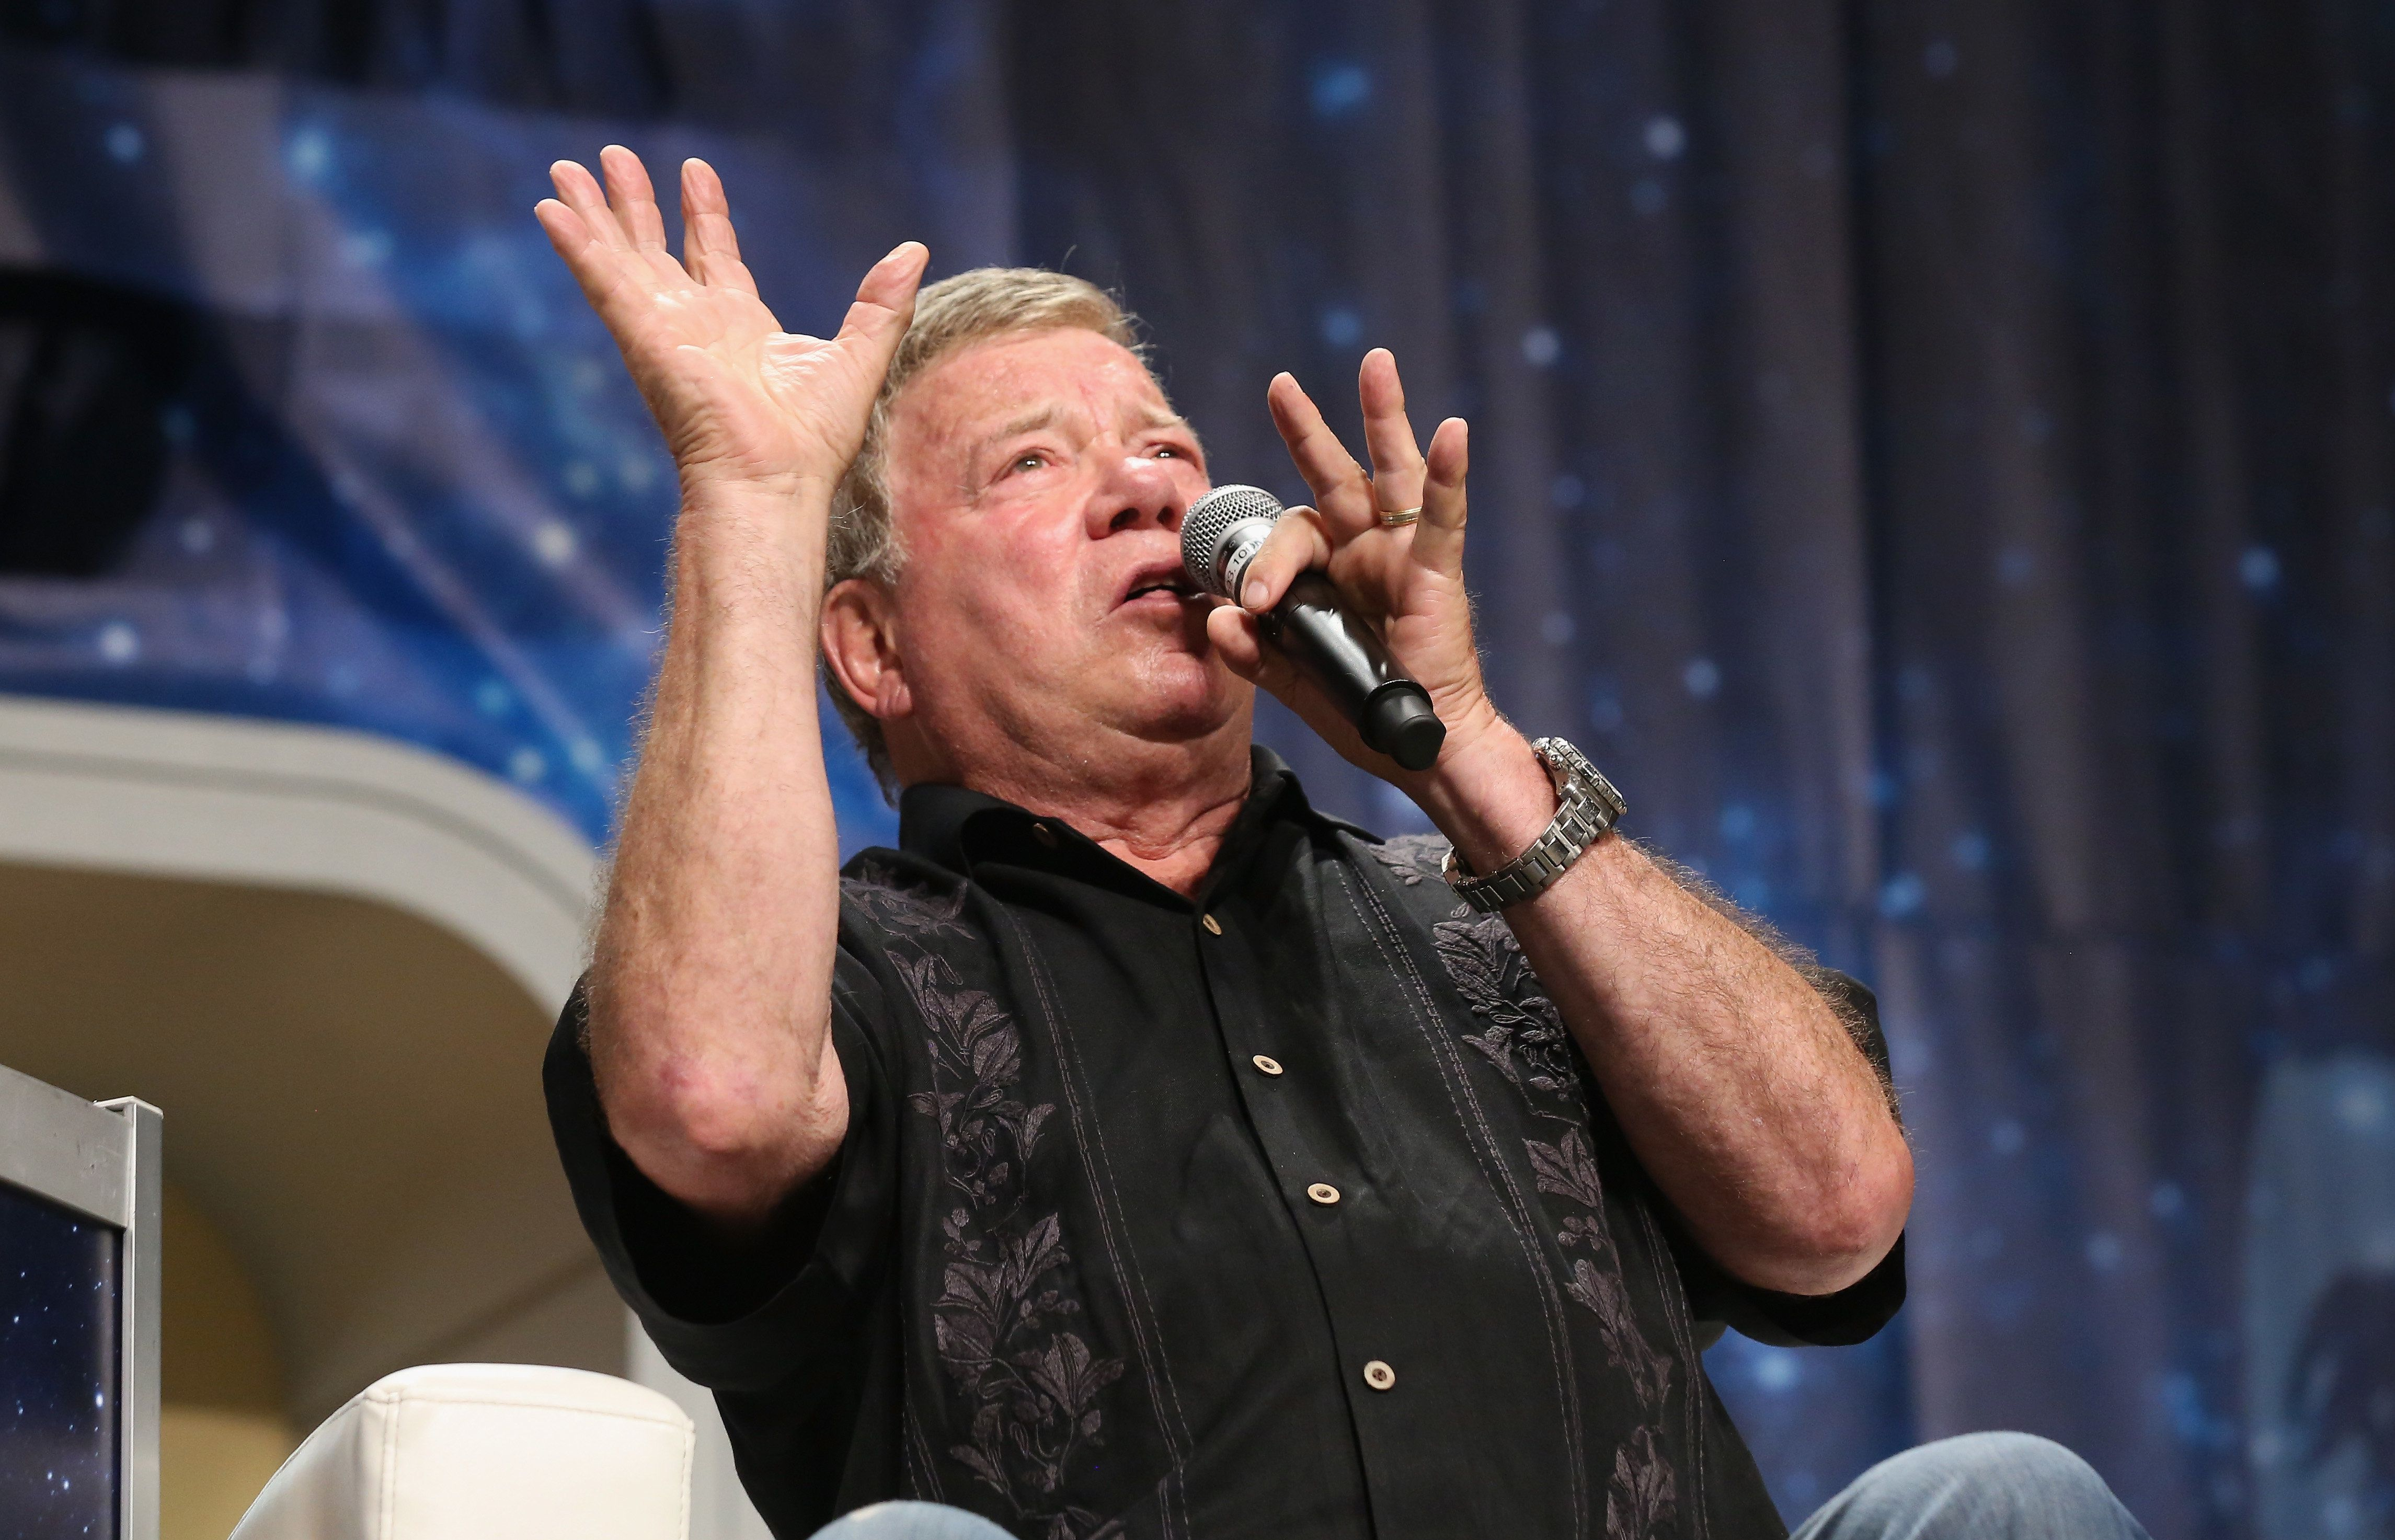 LAS VEGAS, NV - AUGUST 06:  Actor William Shatner speaks during the 15th annual official Star Trek convention at the Rio Hotel & Casino on August 6, 2016 in Las Vegas, Nevada.  (Photo by Gabe Ginsberg/Getty Images)